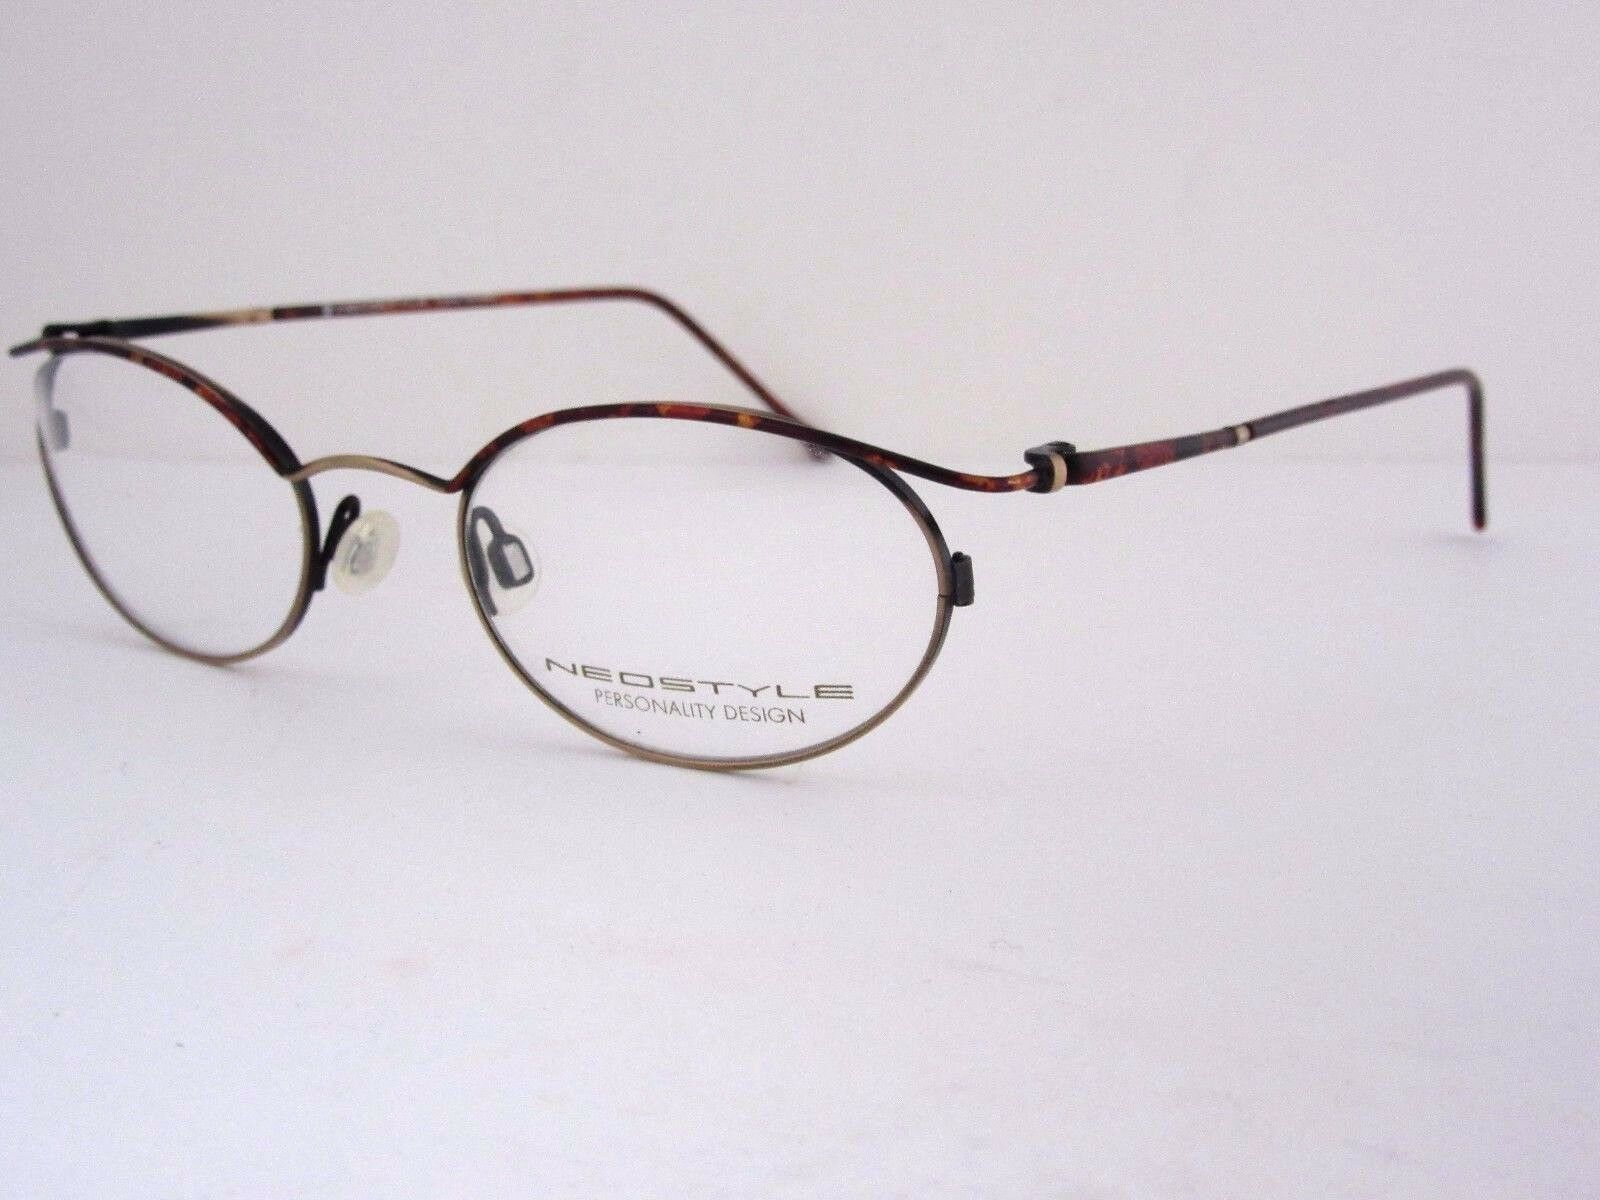 14eb4c7a548 NEOSTYLE College 155 378 Eyeglasses Frame Germany NOS for sale ...